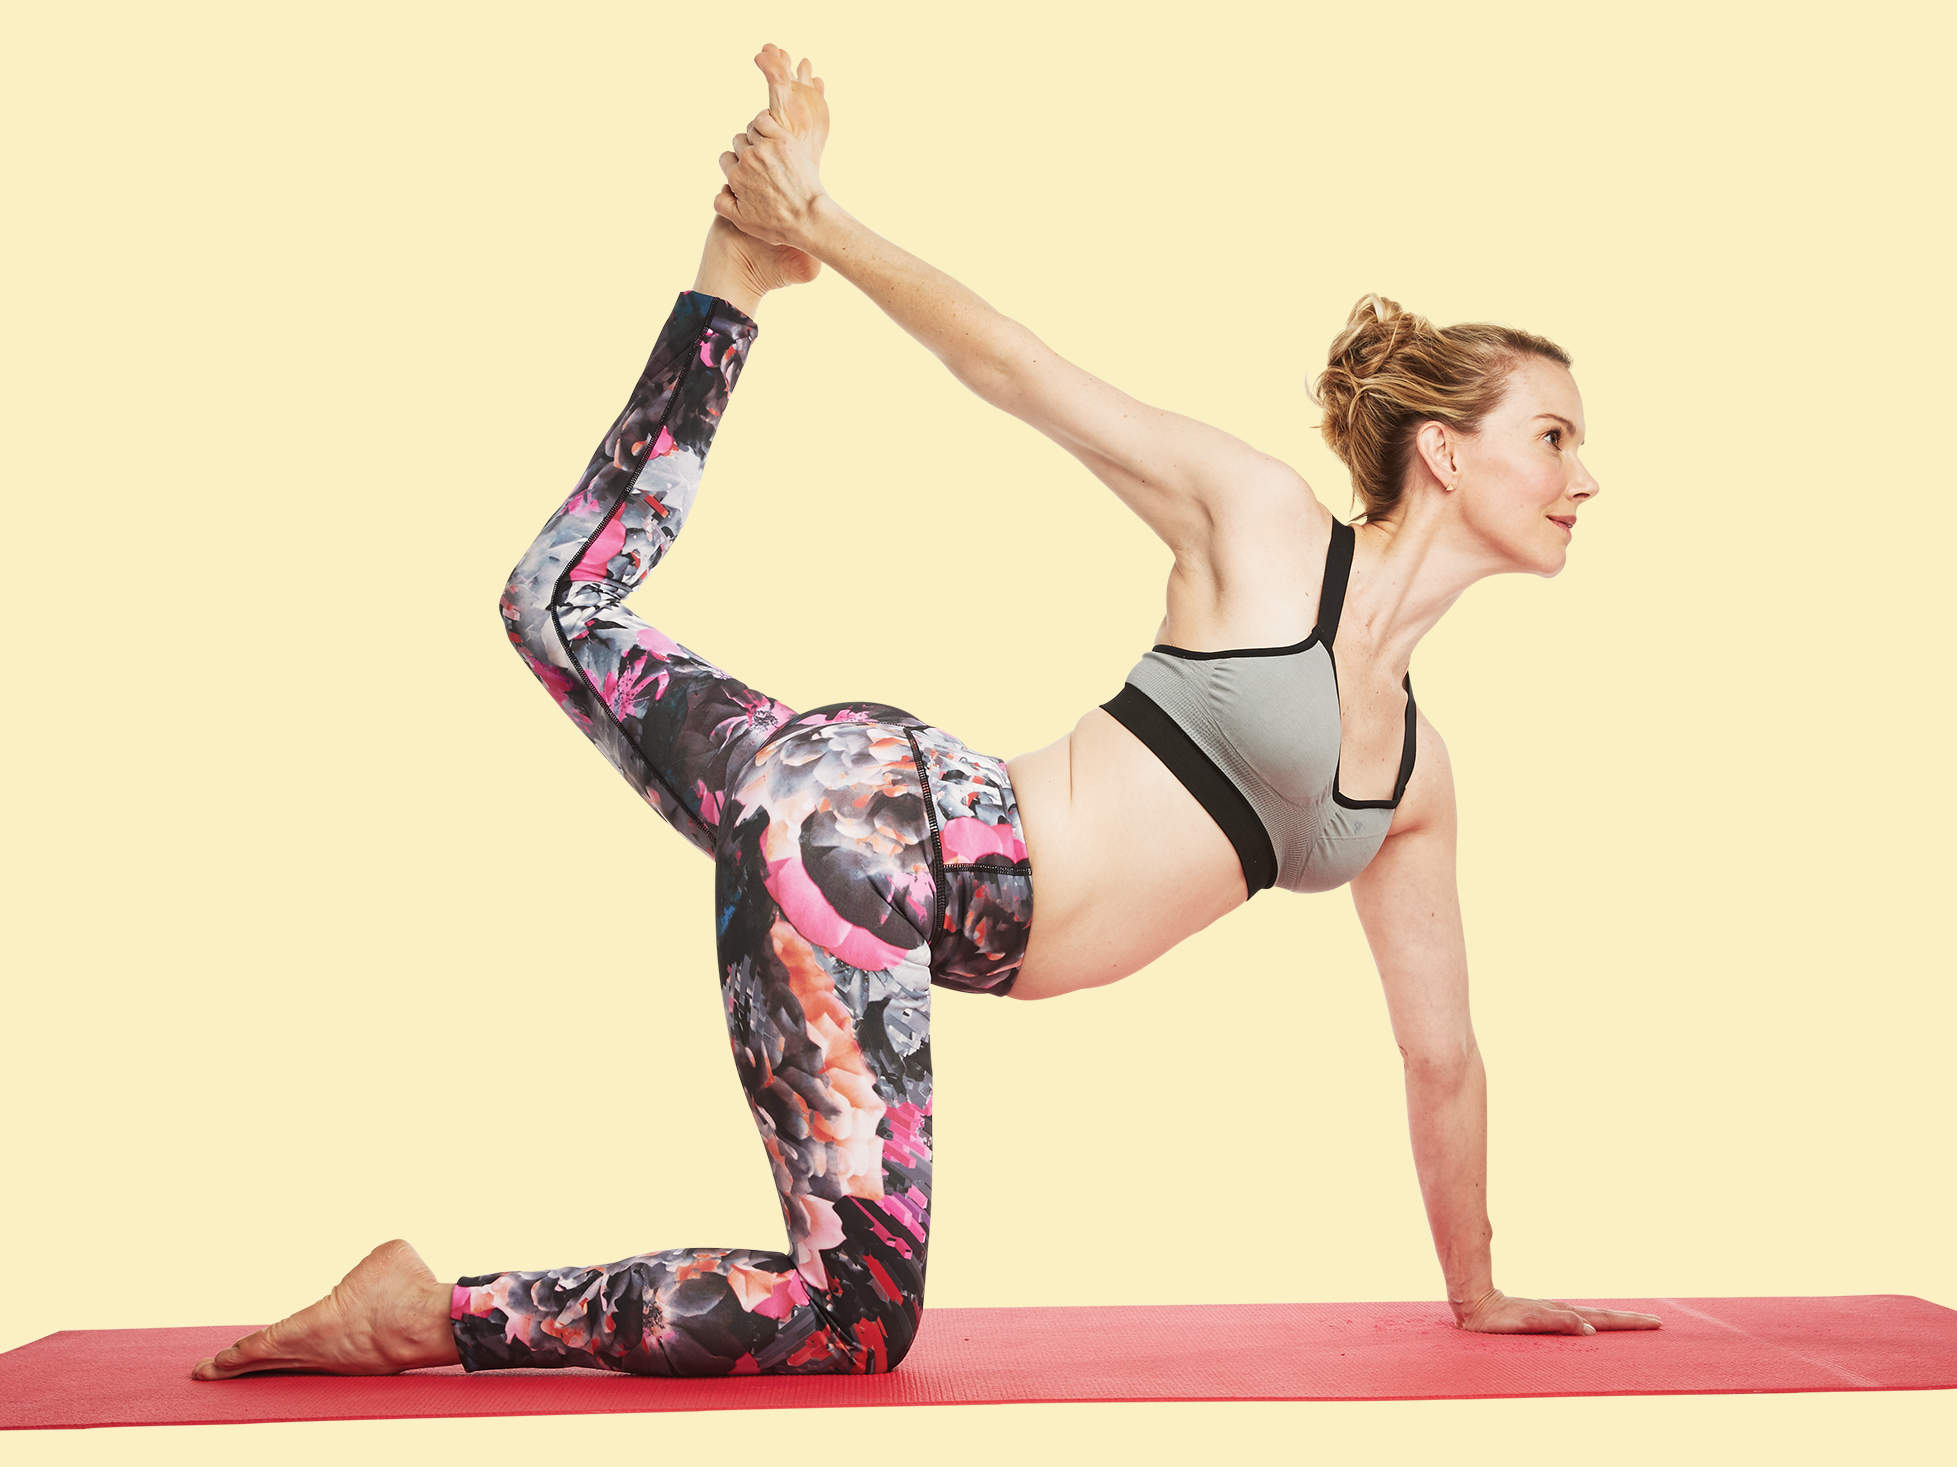 Forum on this topic: 5 Yoga Poses To Boost Your Energy, 5-yoga-poses-to-boost-your-energy/